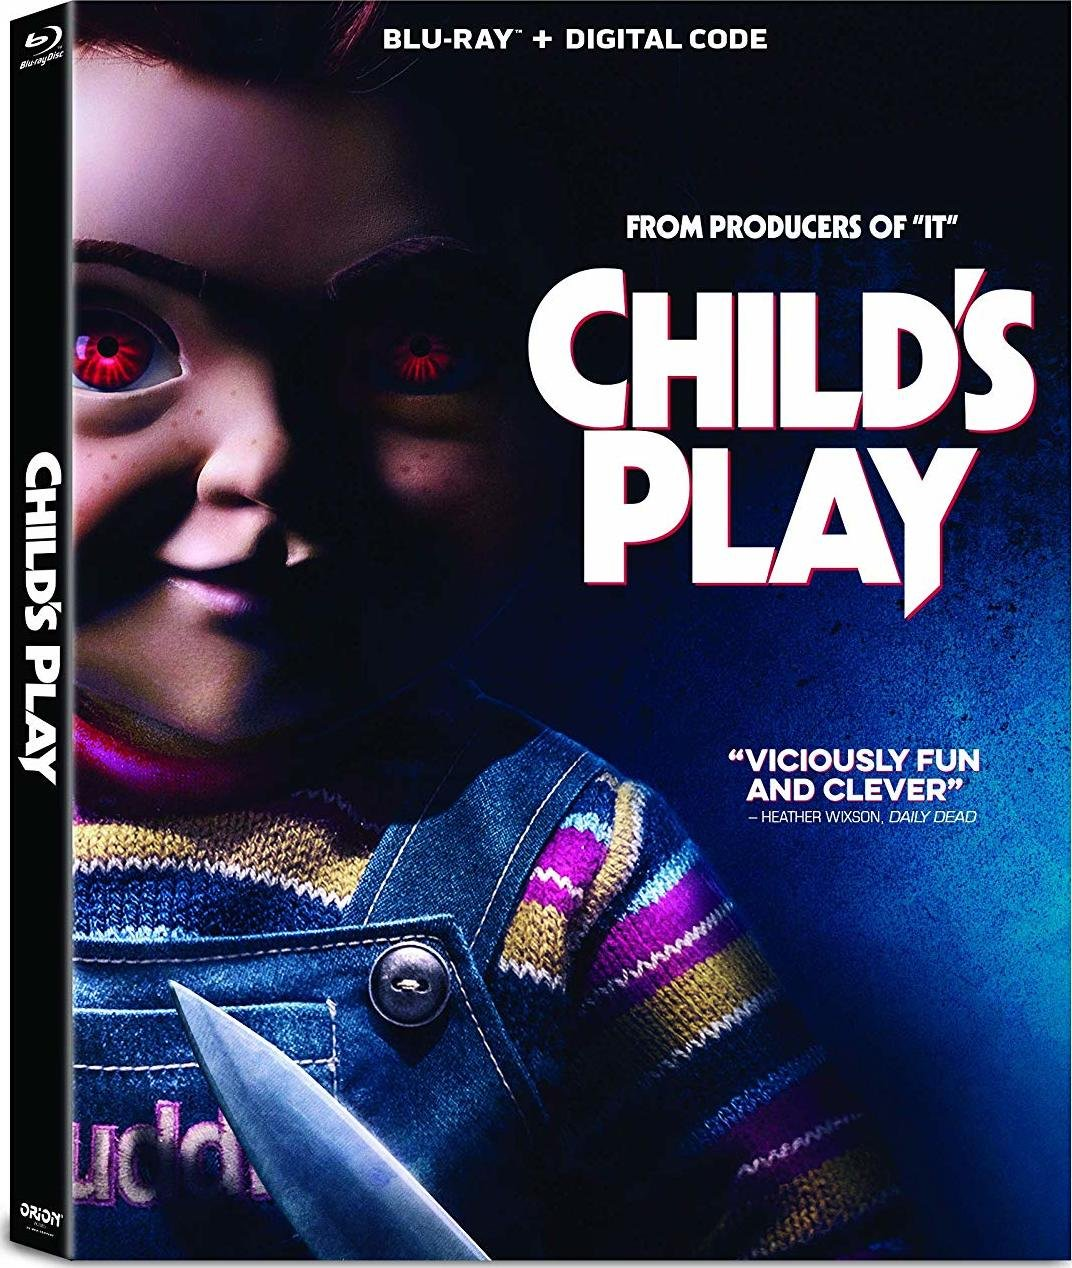 Childs Play (2019) poster image